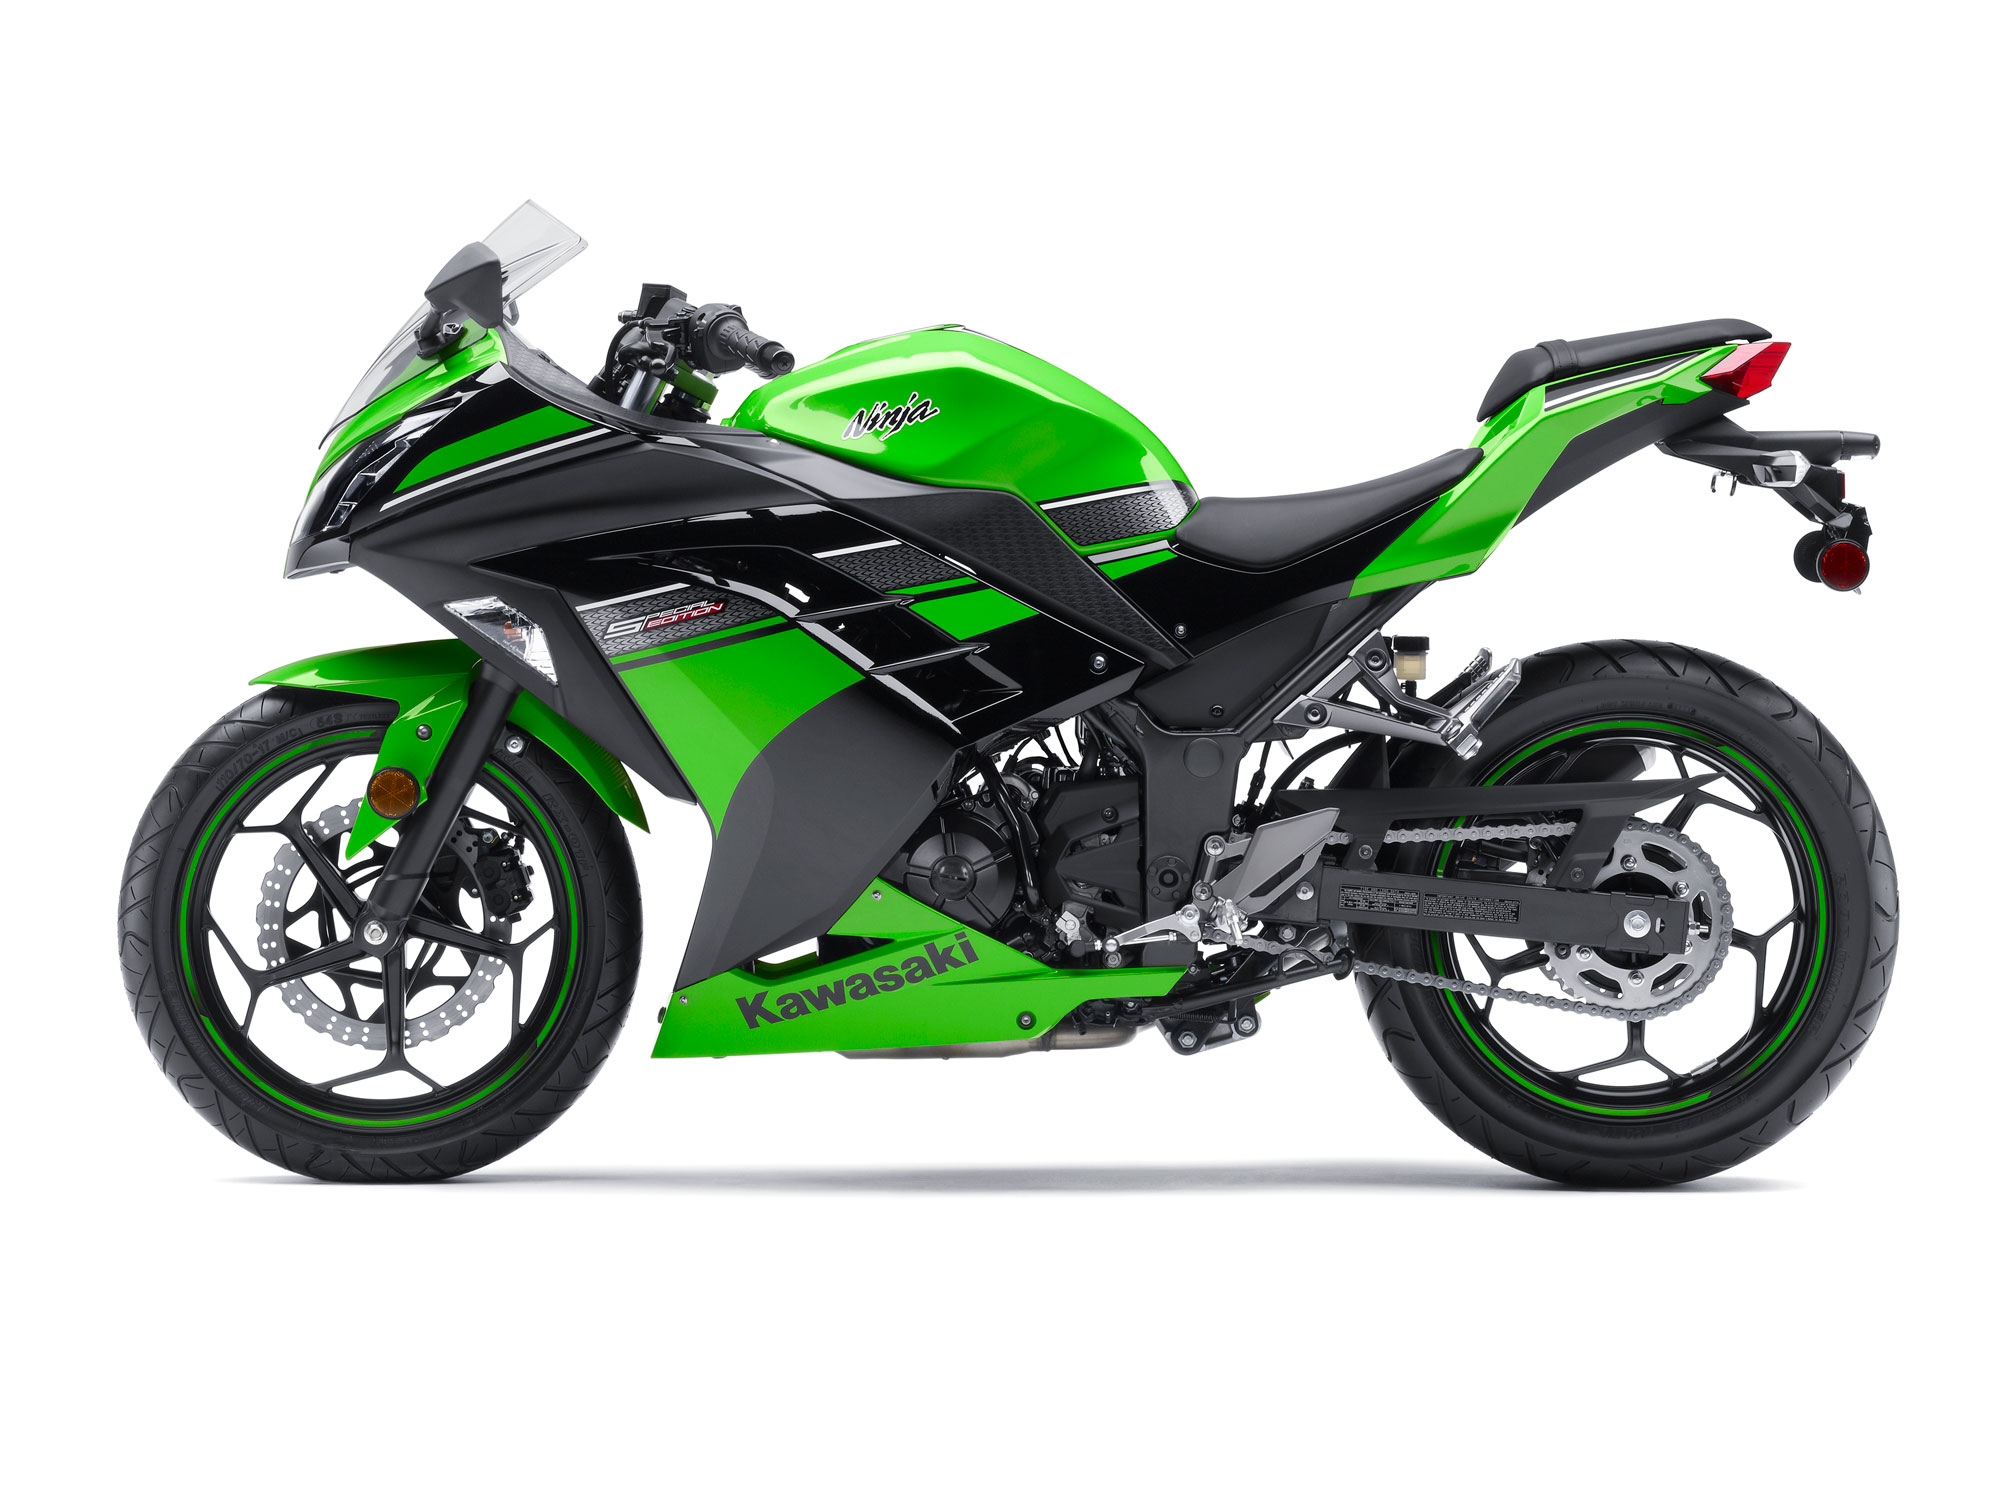 2013 Kawasaki Ninja 300 Special Edition ABS Review